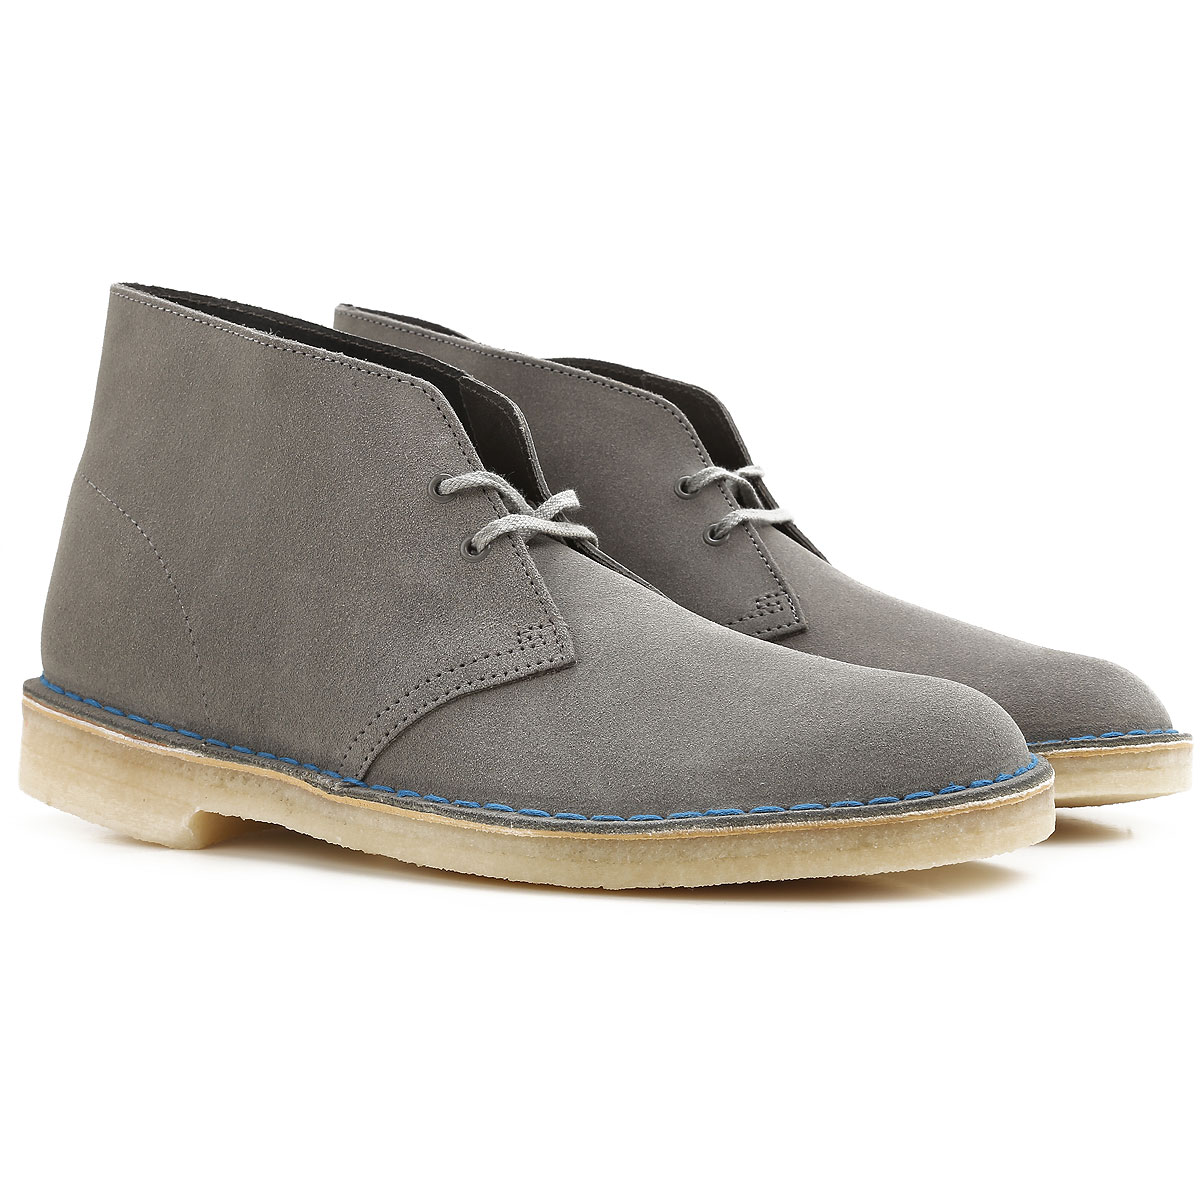 Image of Clarks Desert Boots Chukka for Men, Stone Grey, Suede leather, 2017, 10 8.5 9 9.5